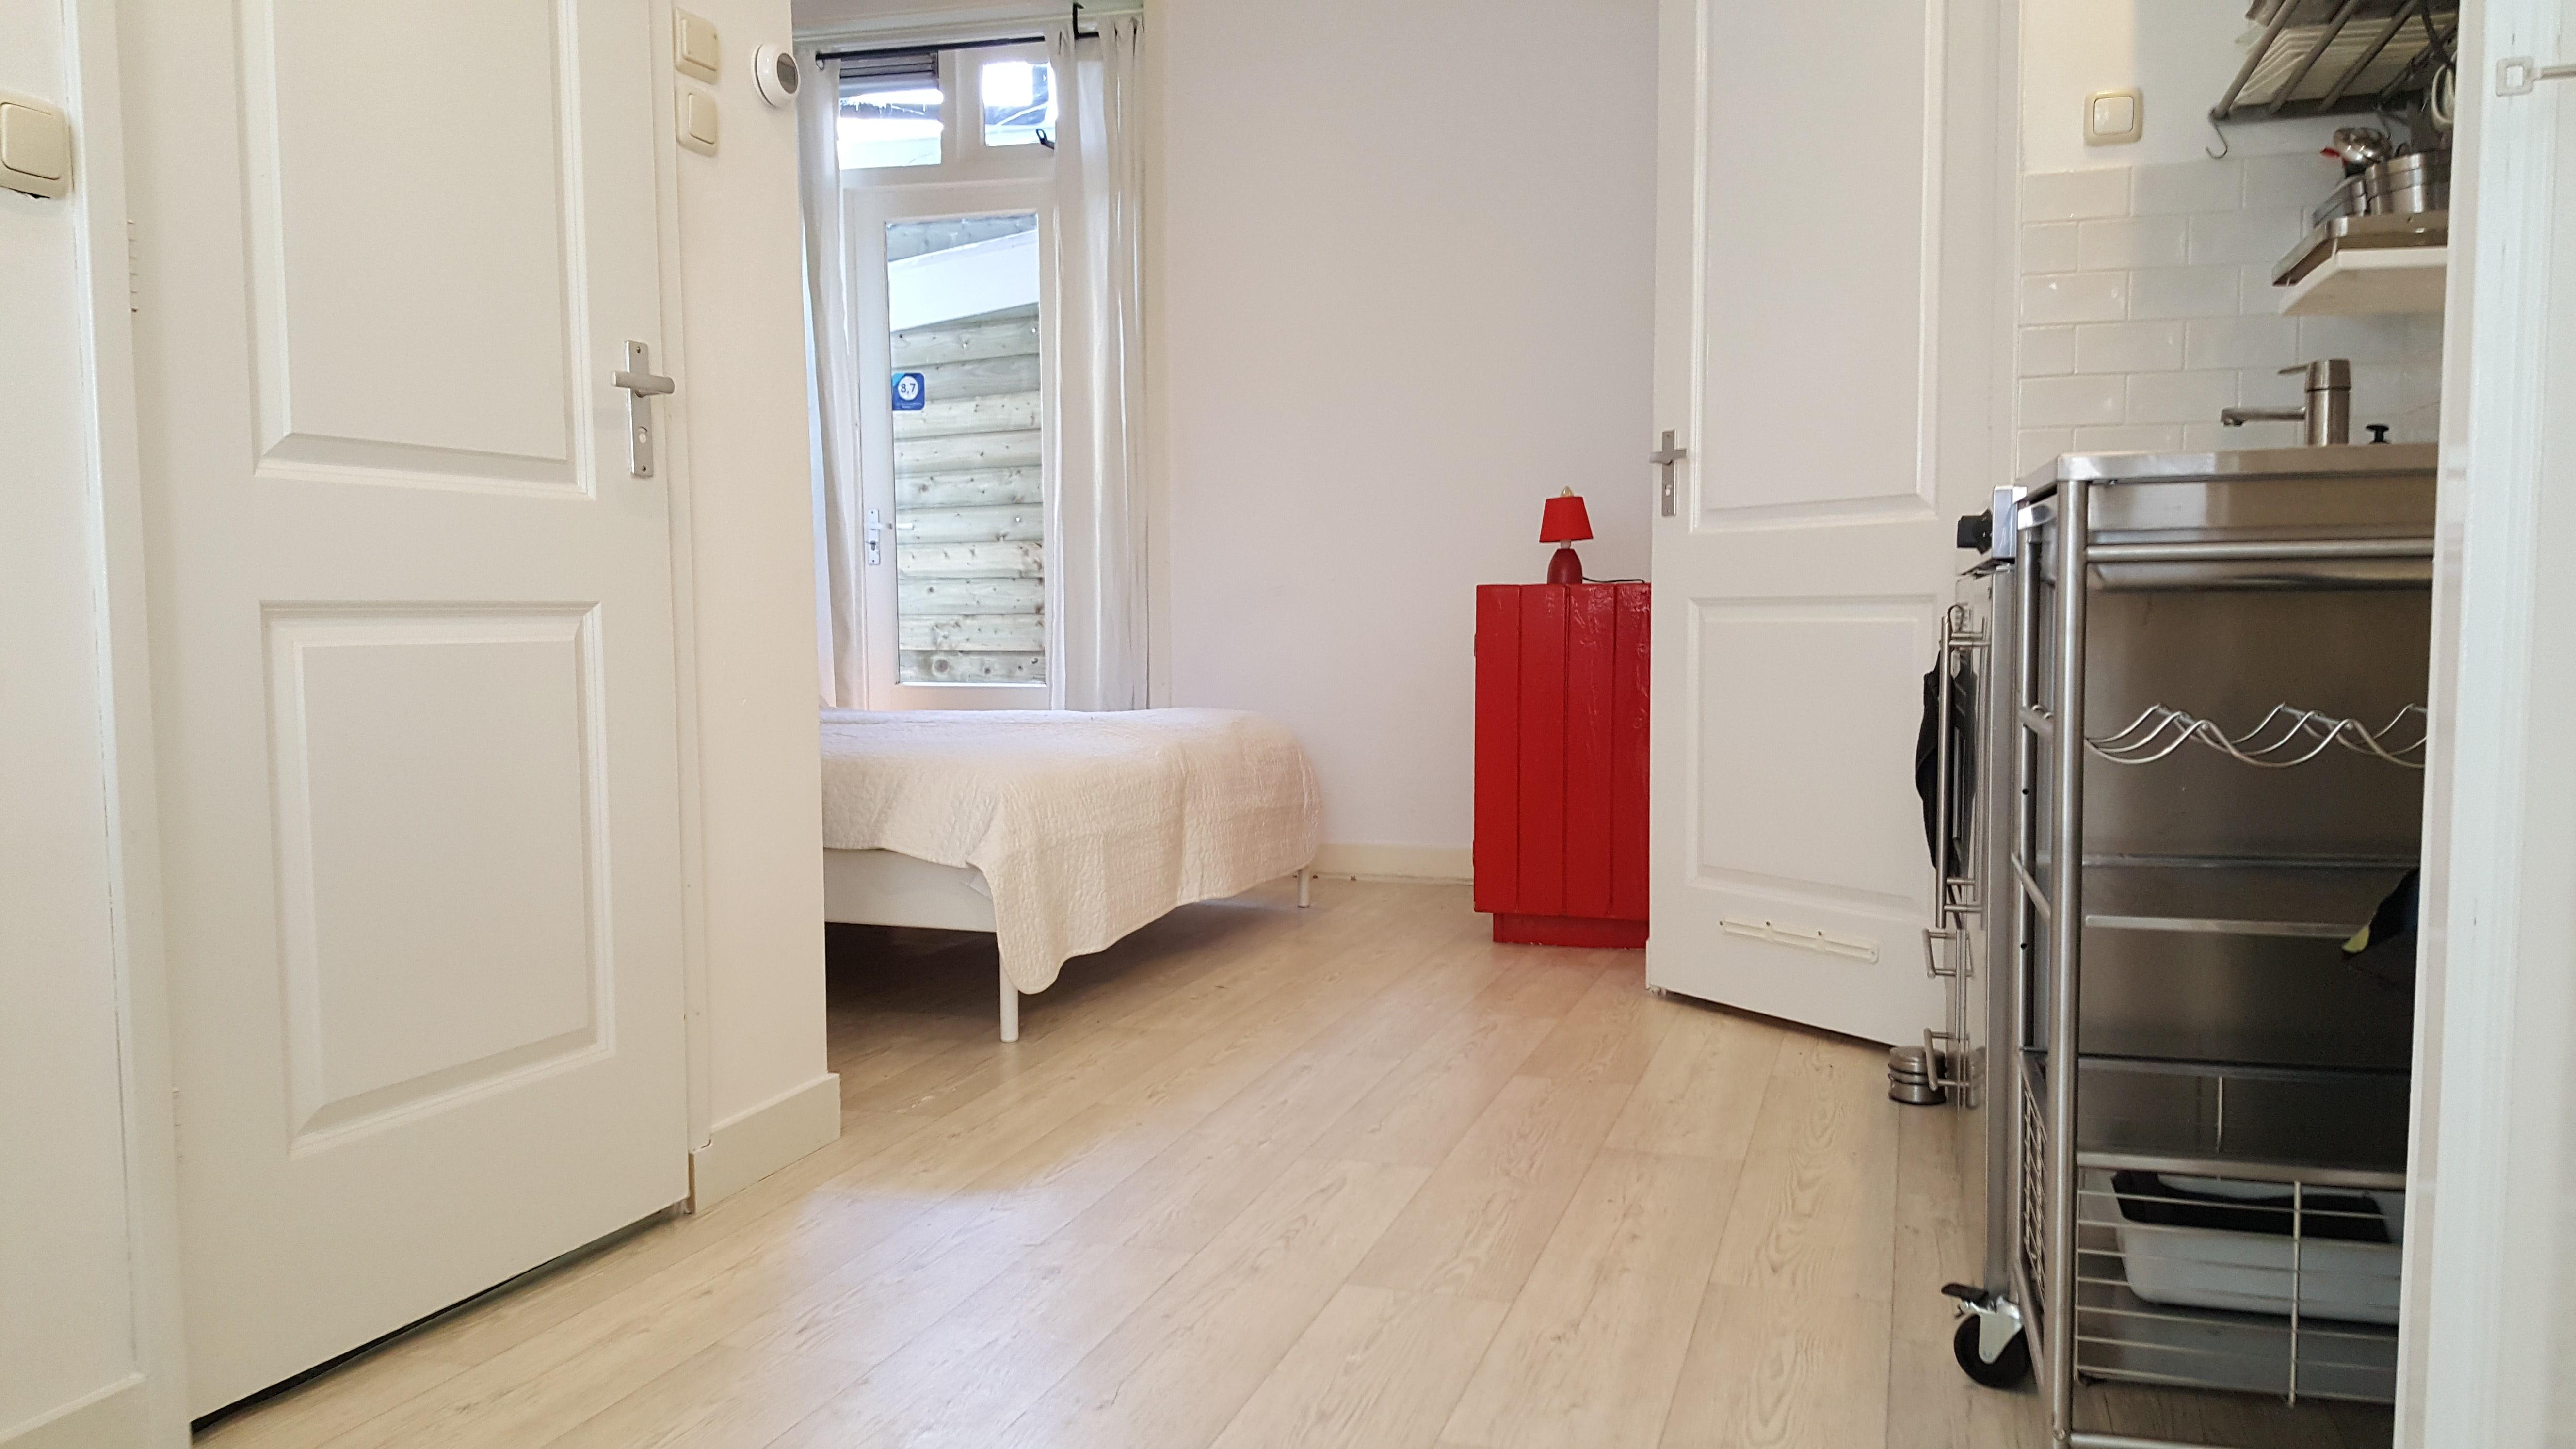 Apartment Clean 4 guest studio 2 KM  from Anne Frank house  3 KM from Dam Square photo 23229764